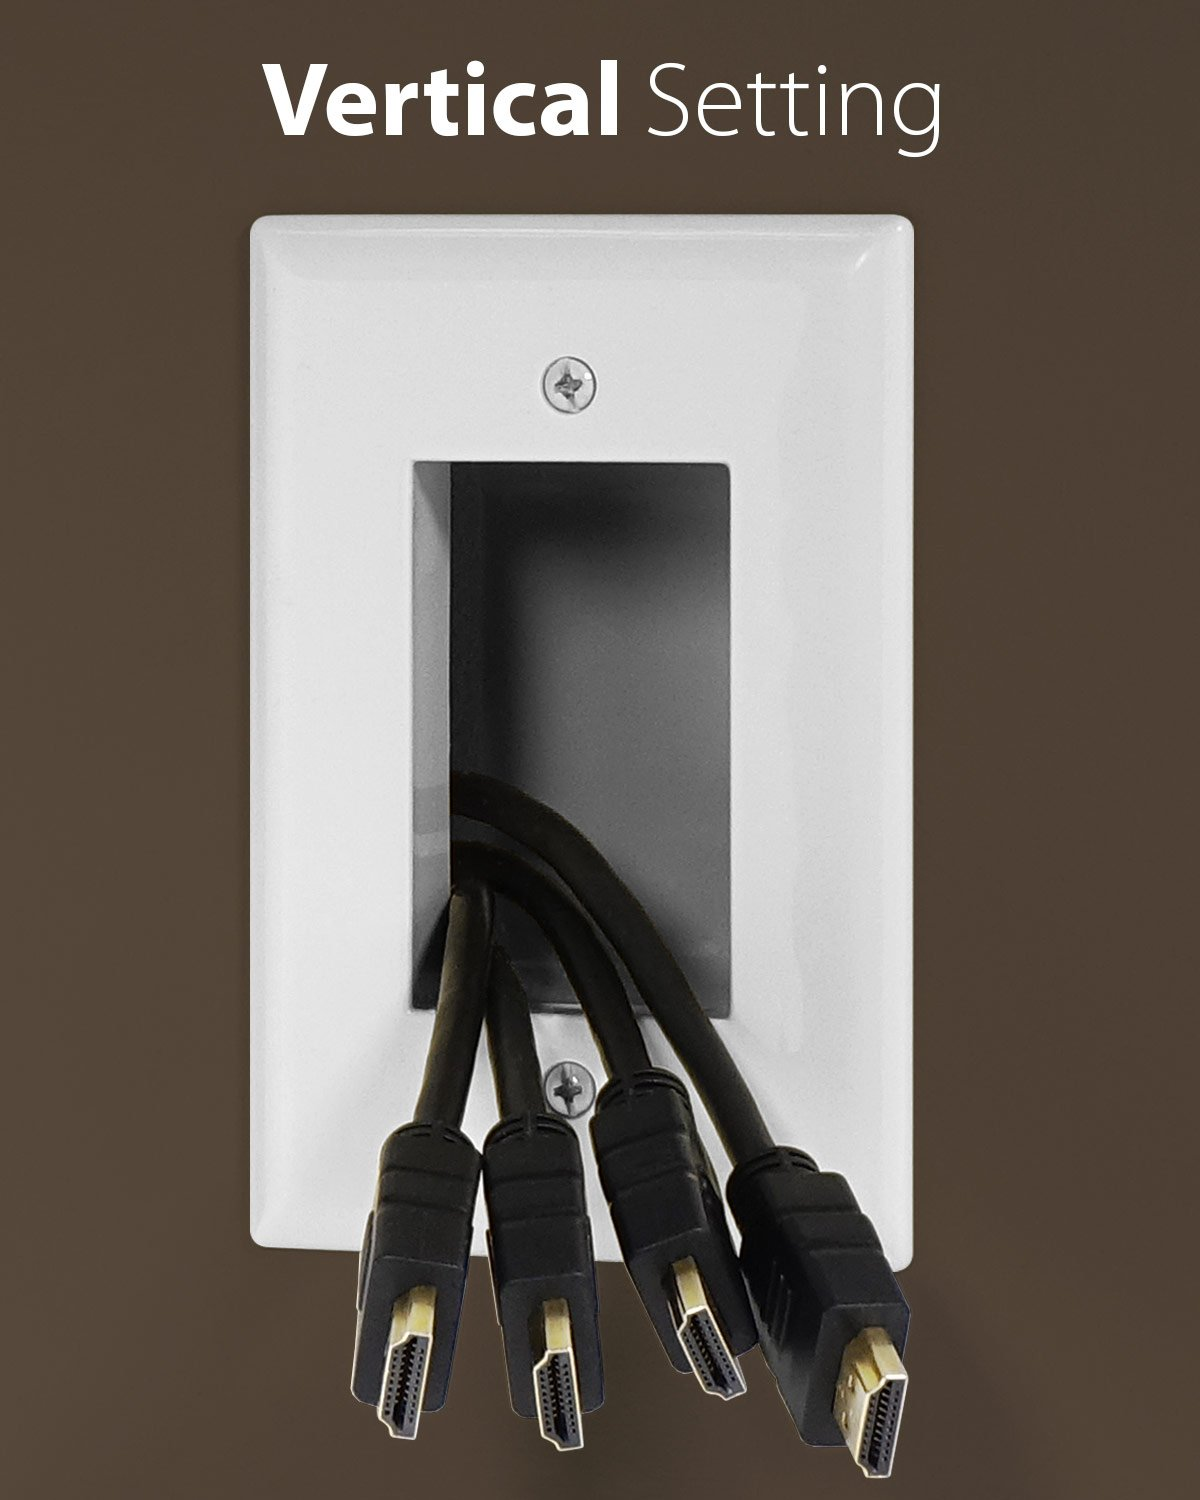 Fosmon 1 Gang Recessed Low Voltage Cable Plate In Wall House Wiring Electronics